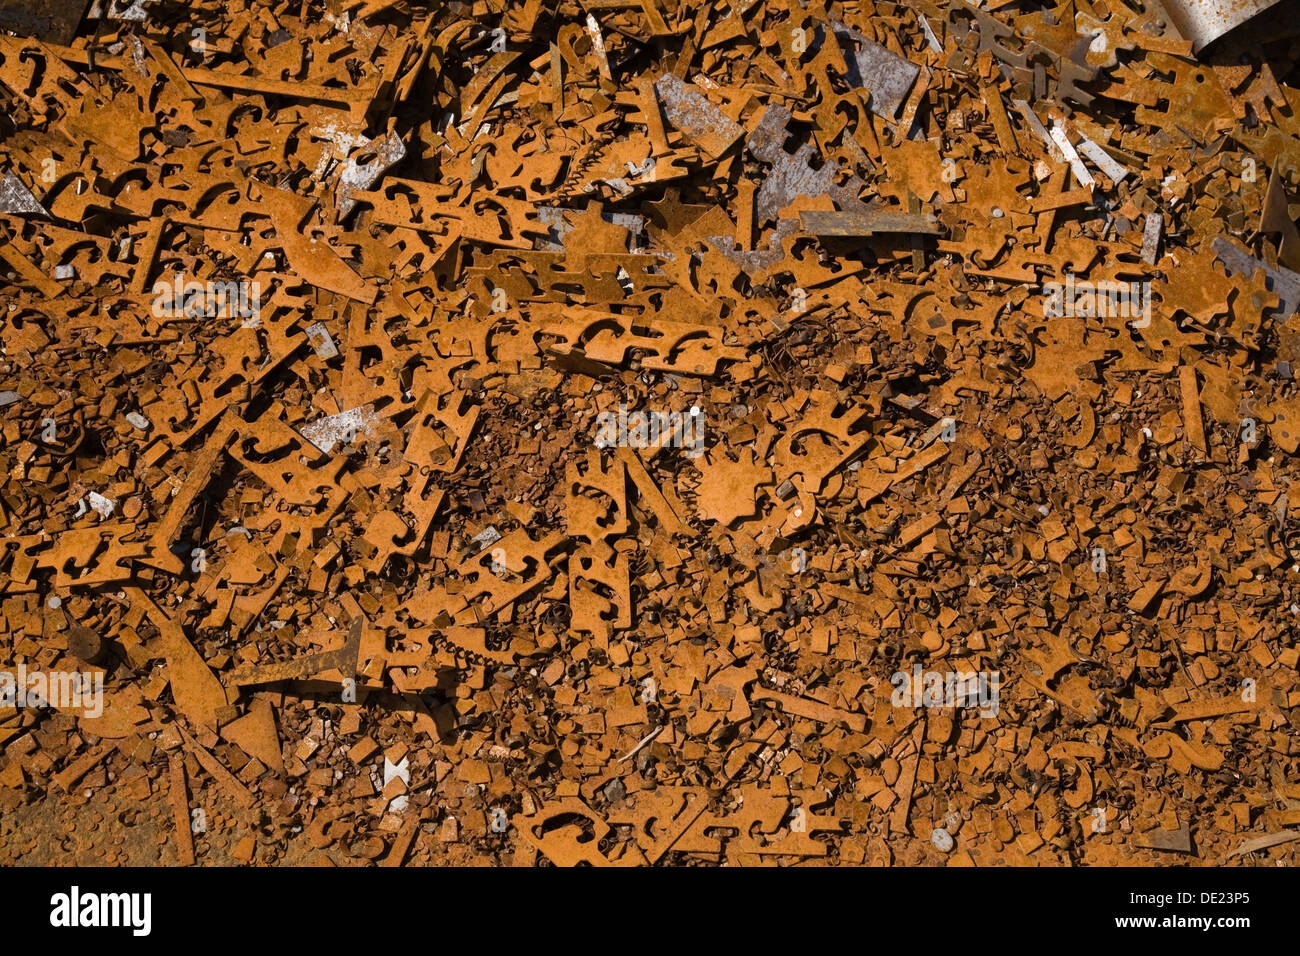 Assorted rusted metal brackets at a scrap metal recycling junkyard, Quebec, Canada Stock Photo